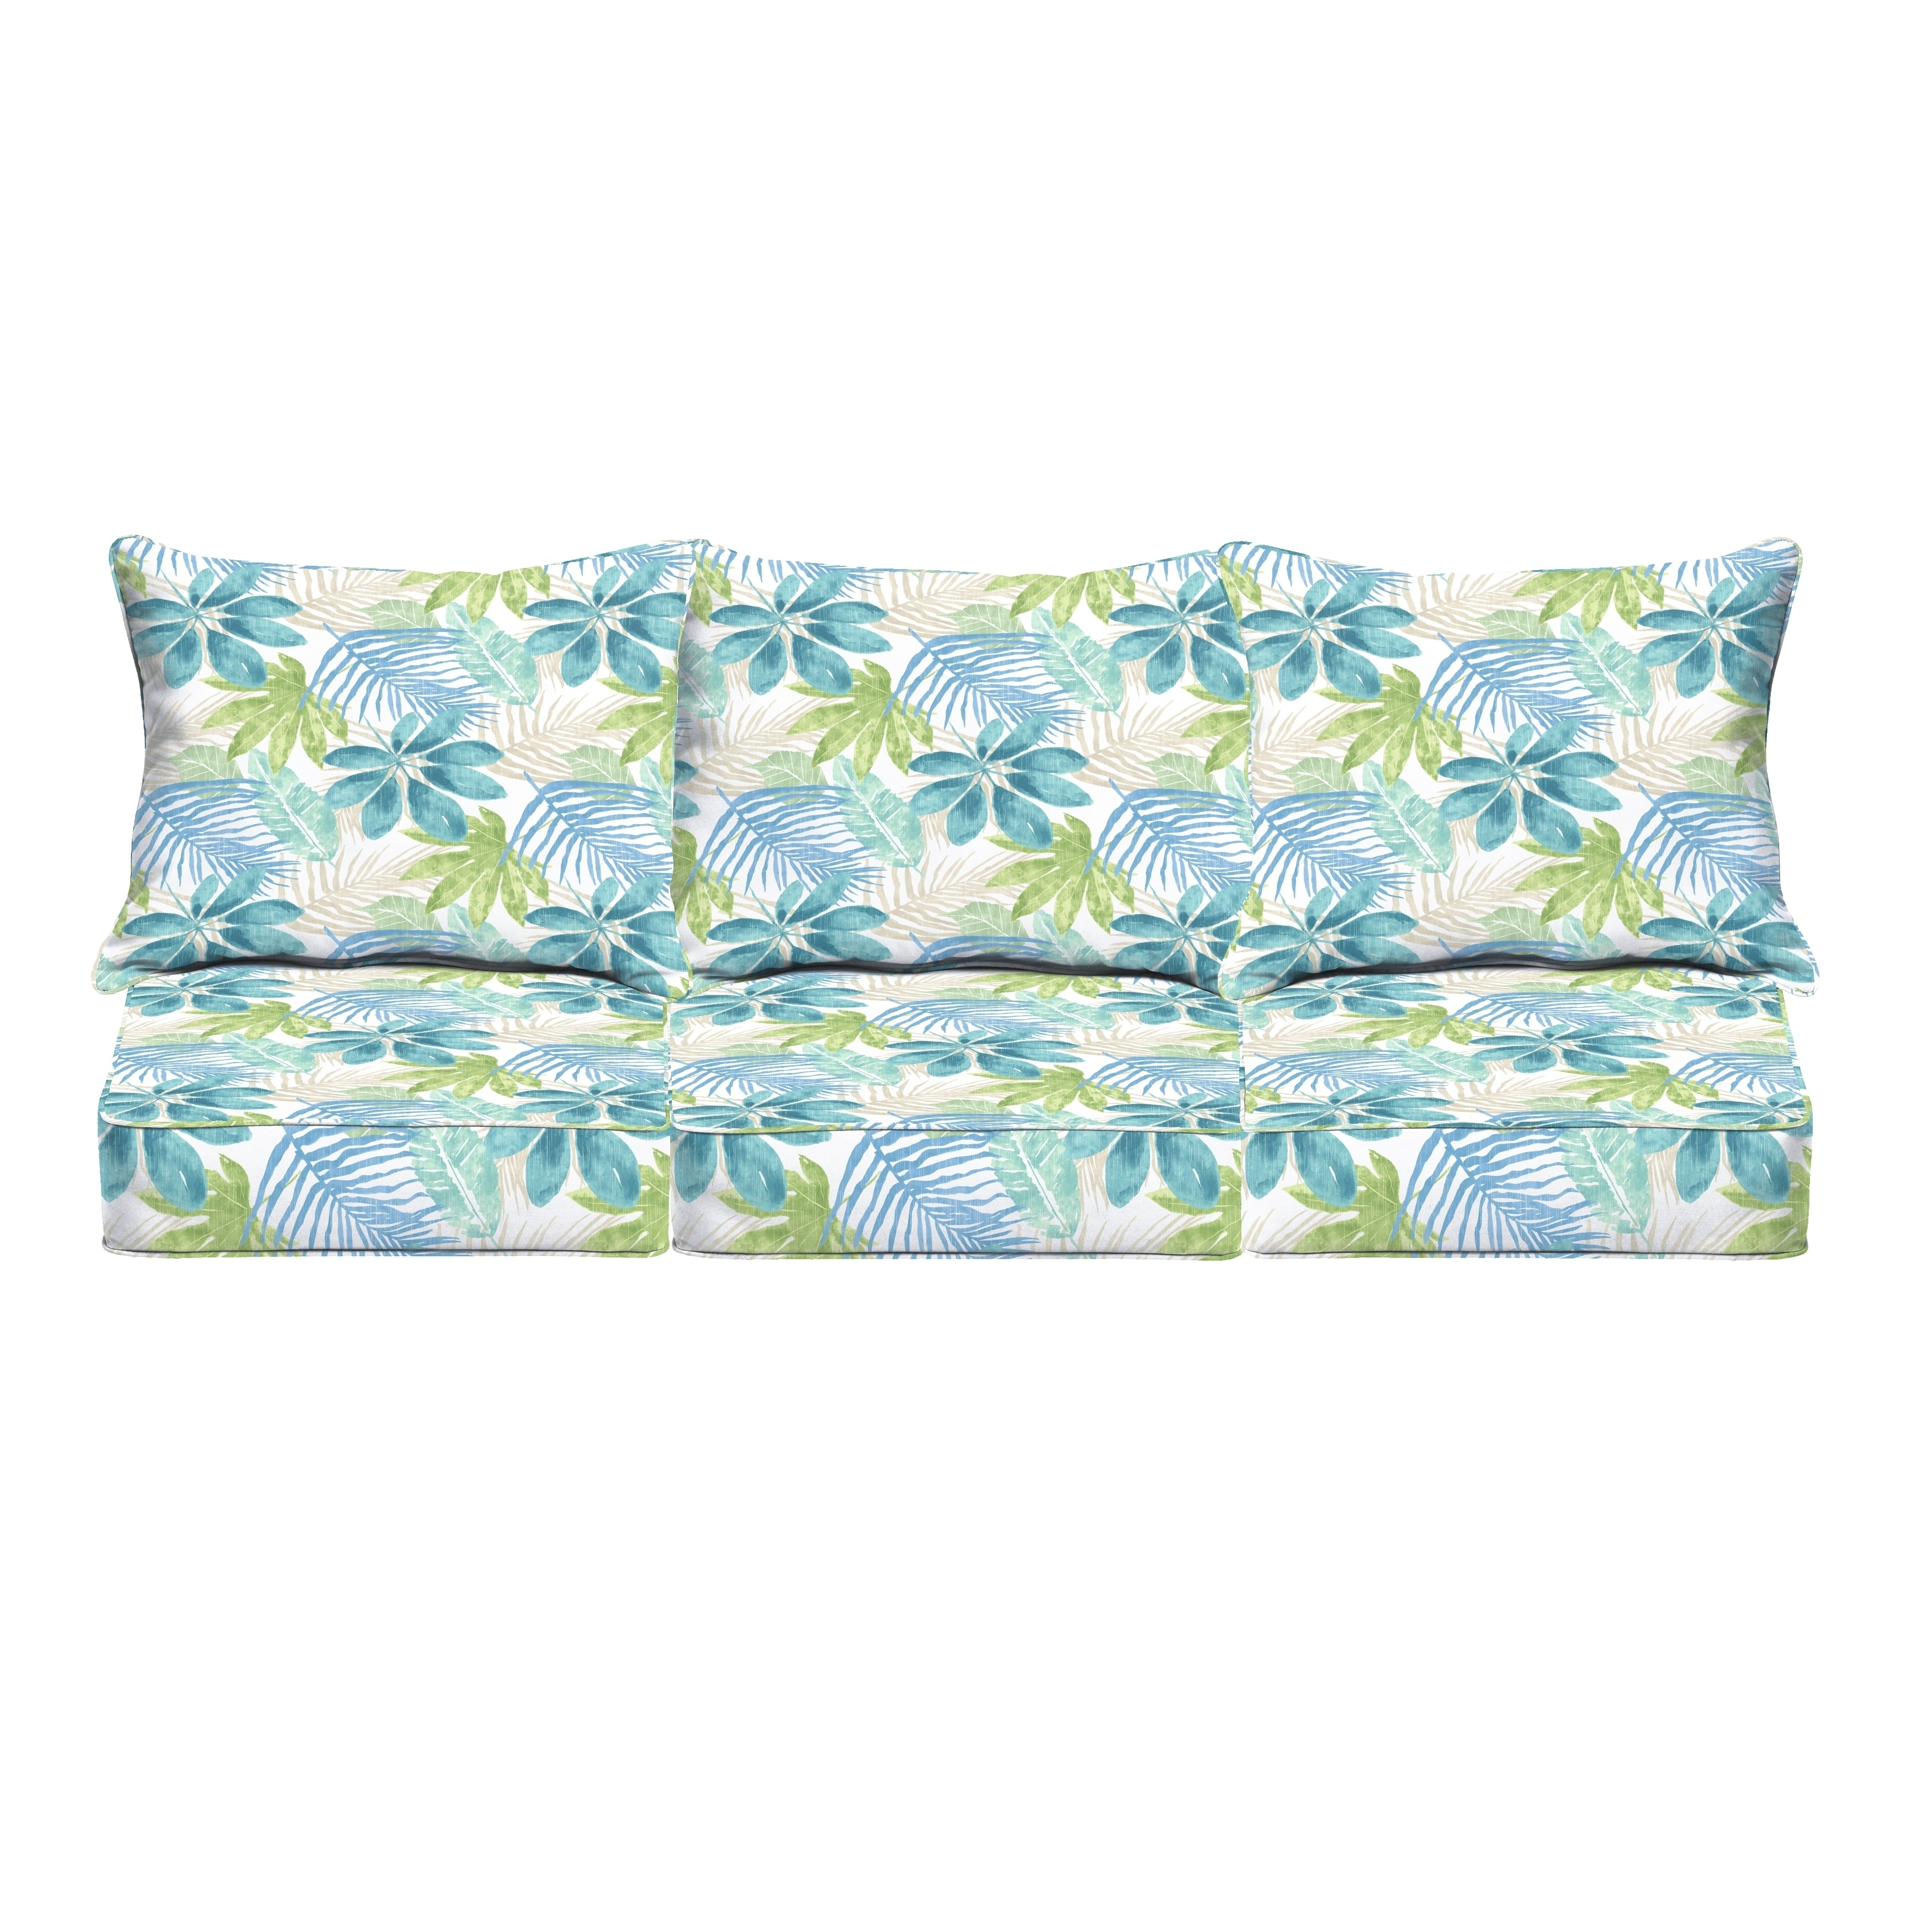 Tremendous Humble Haute Indoor Outdoor Blue Green Tropical Deep Seating 6 Pc Cushion Set 69 In W X 25 In D Bralicious Painted Fabric Chair Ideas Braliciousco